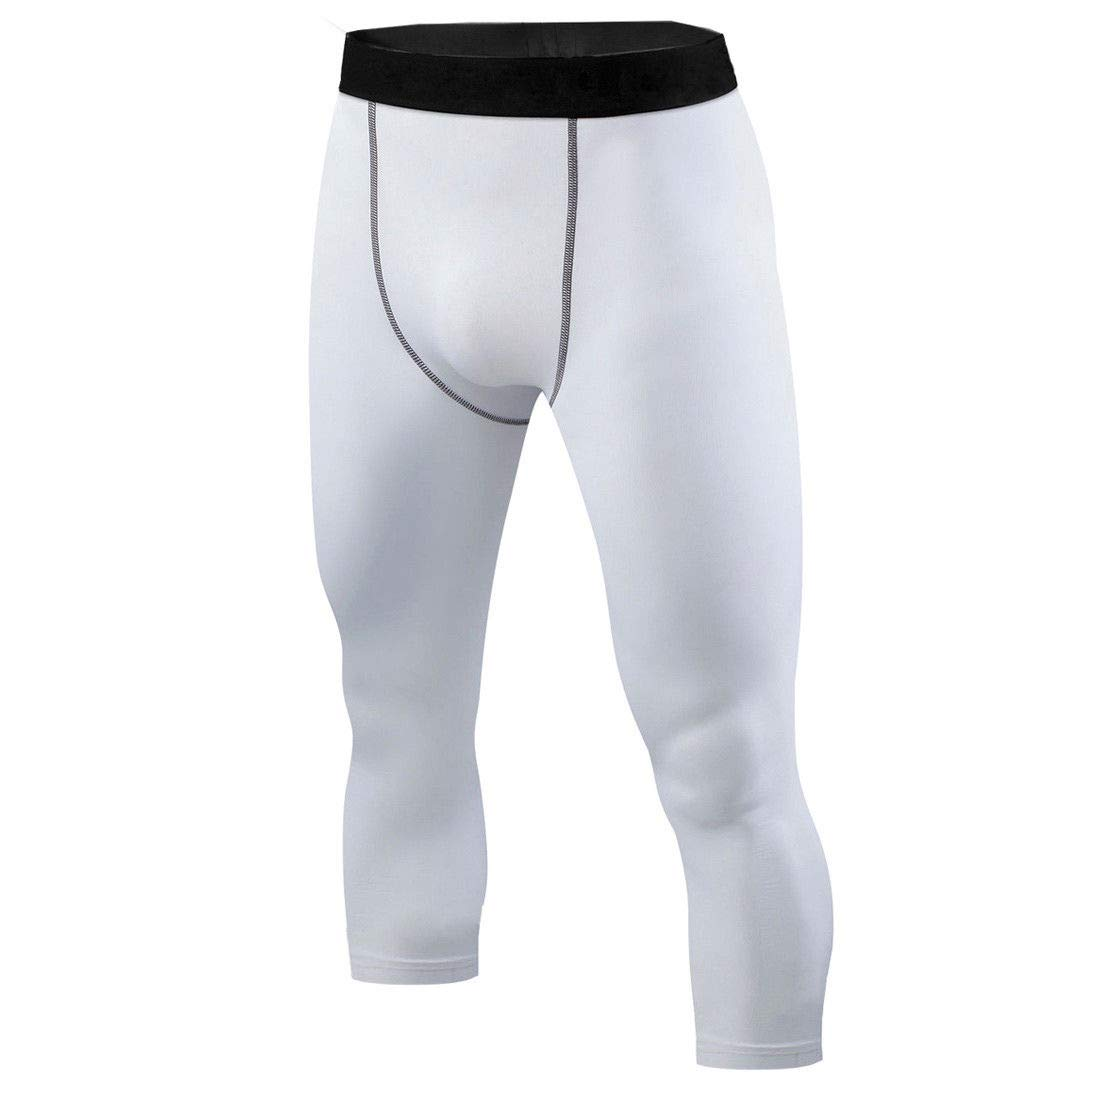 M-L Mens White Compression 3//4 Cropped Pants Under Base Layer Tights #HLFN